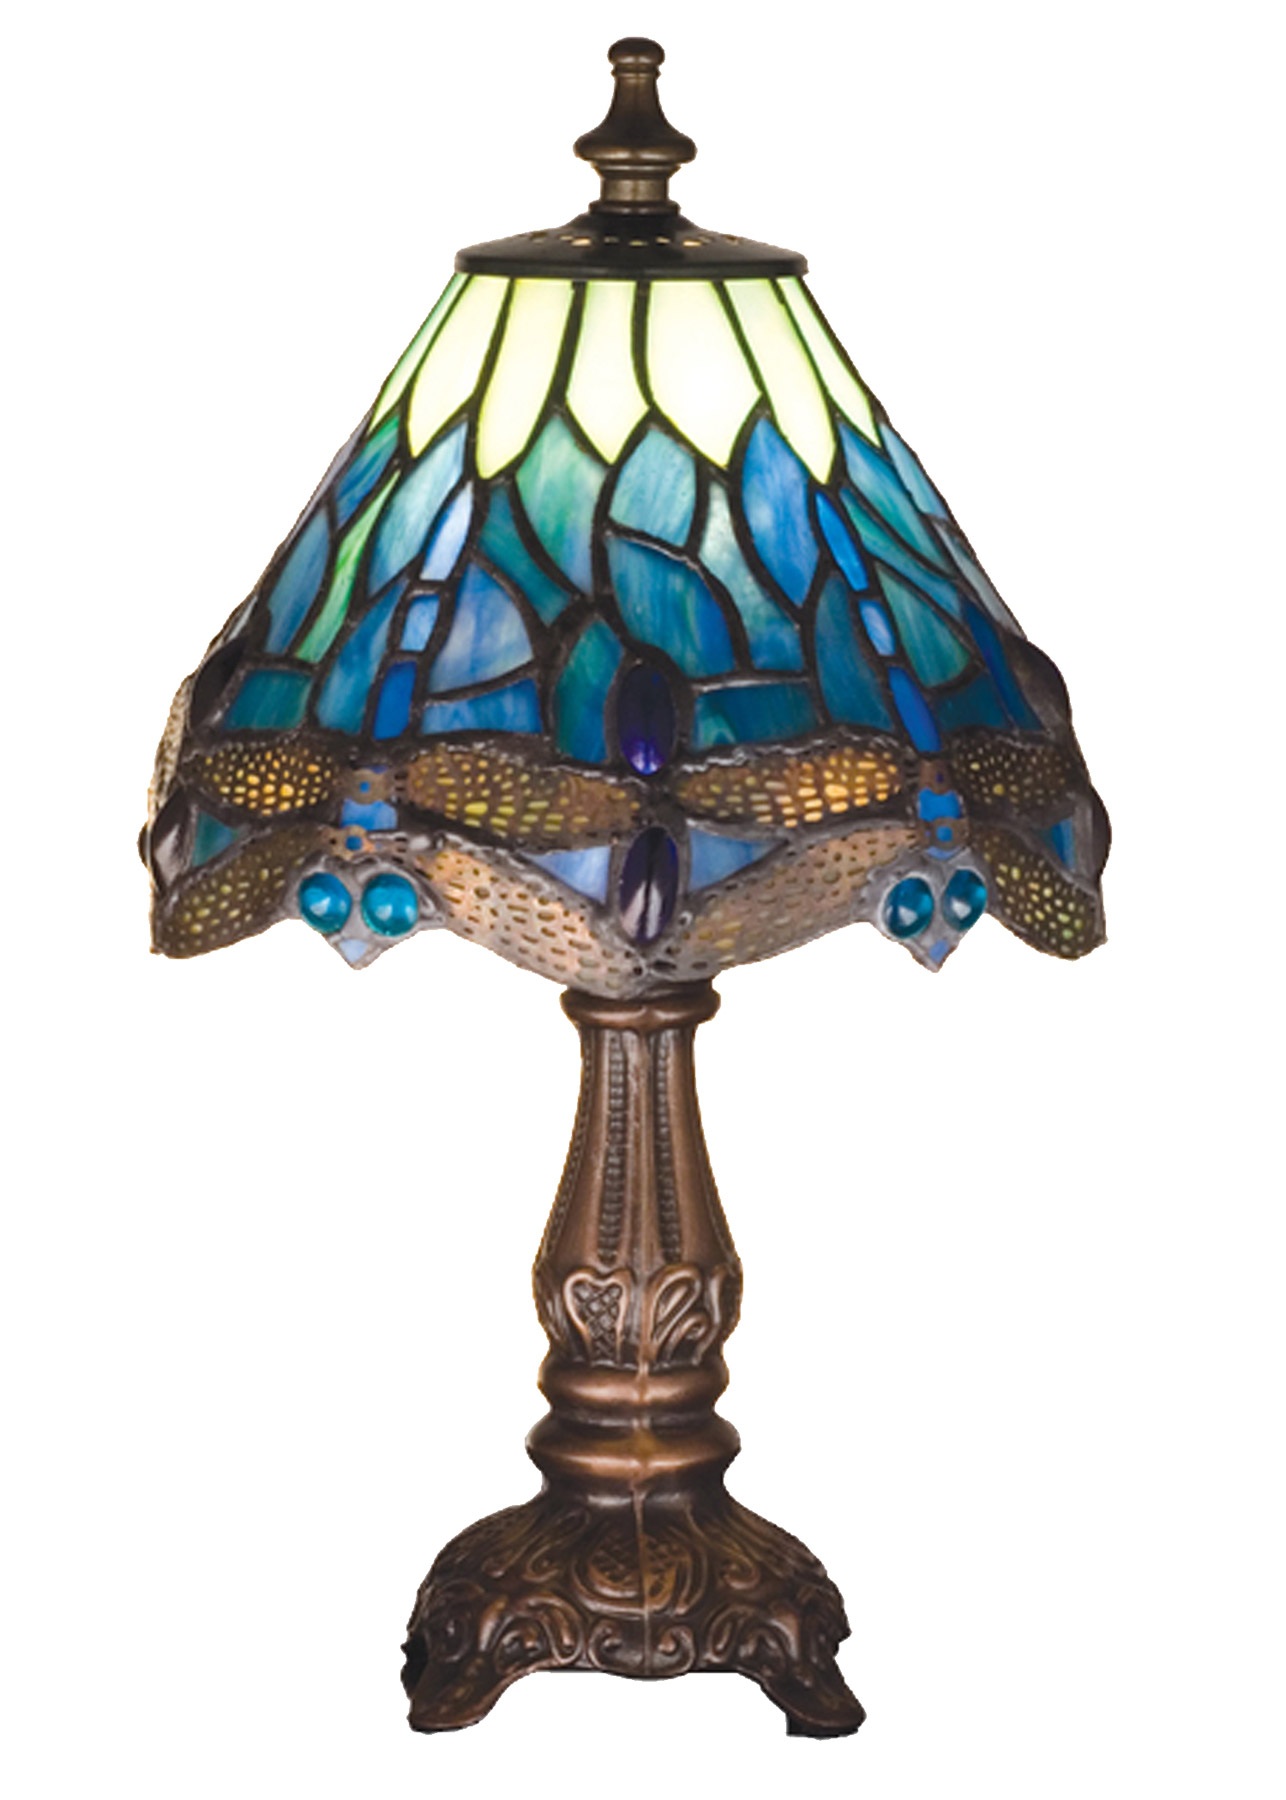 Meyda 26597 Tiffany Dragonfly Mini Accent Lamp